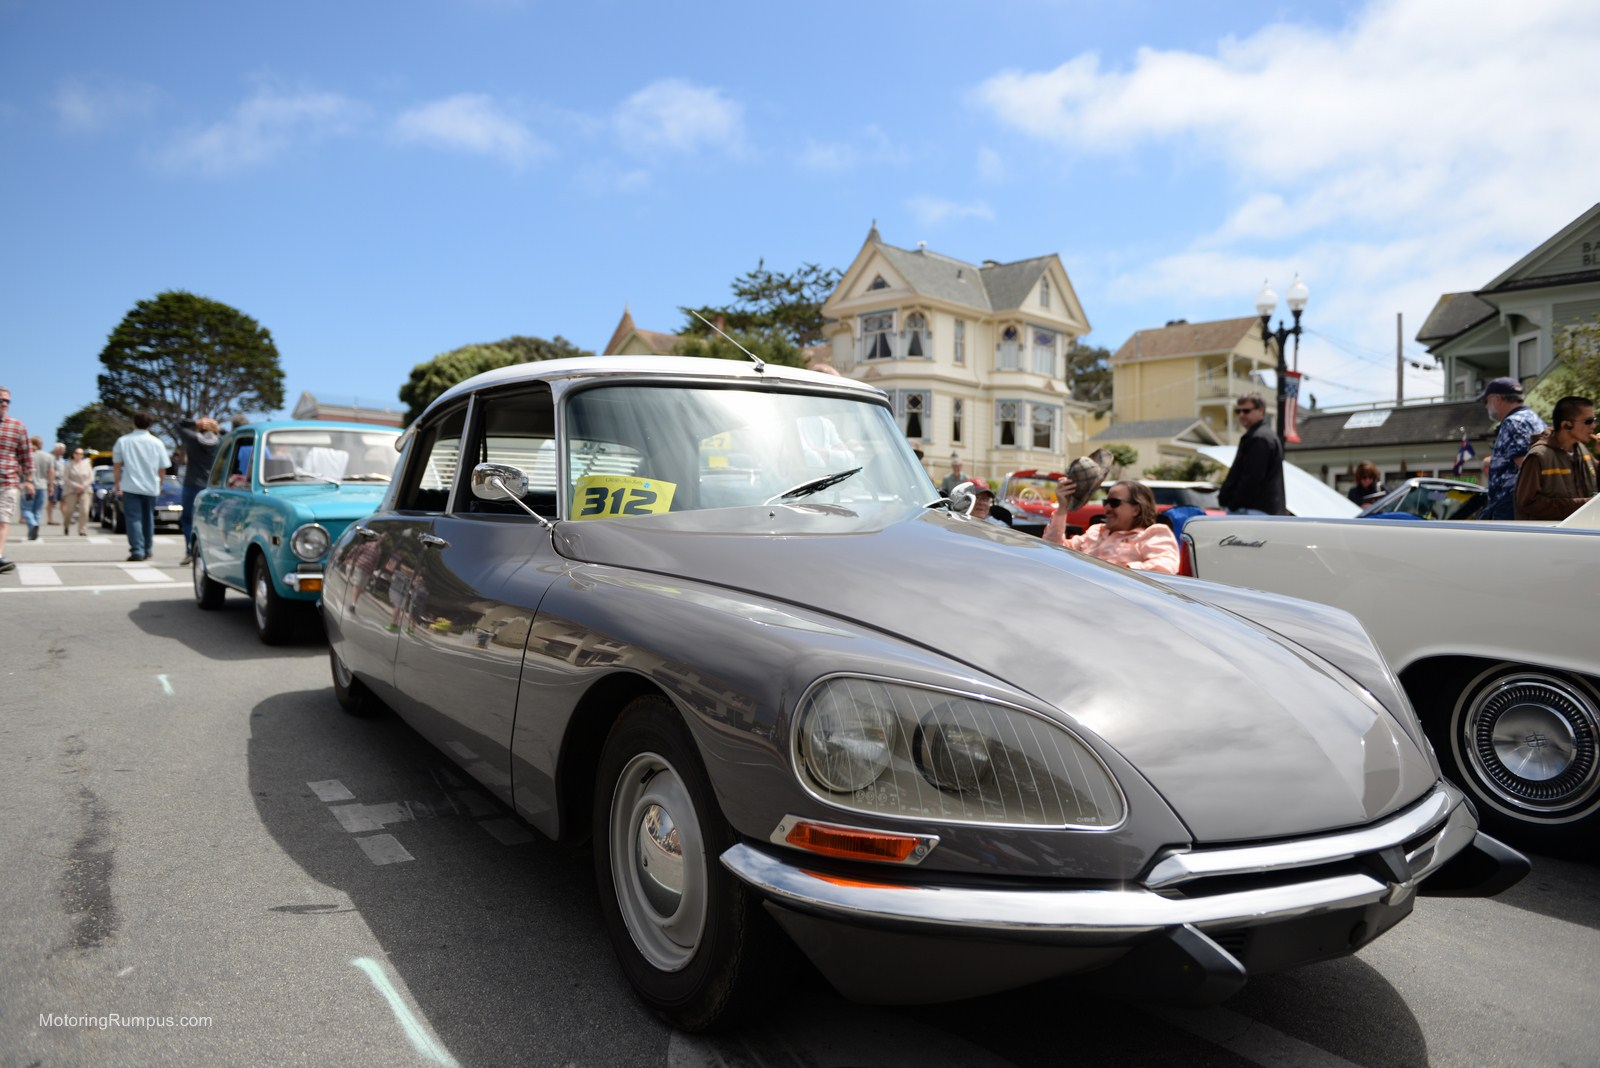 2014 Pacific Grove Concours Auto Rally Citroen Ds21